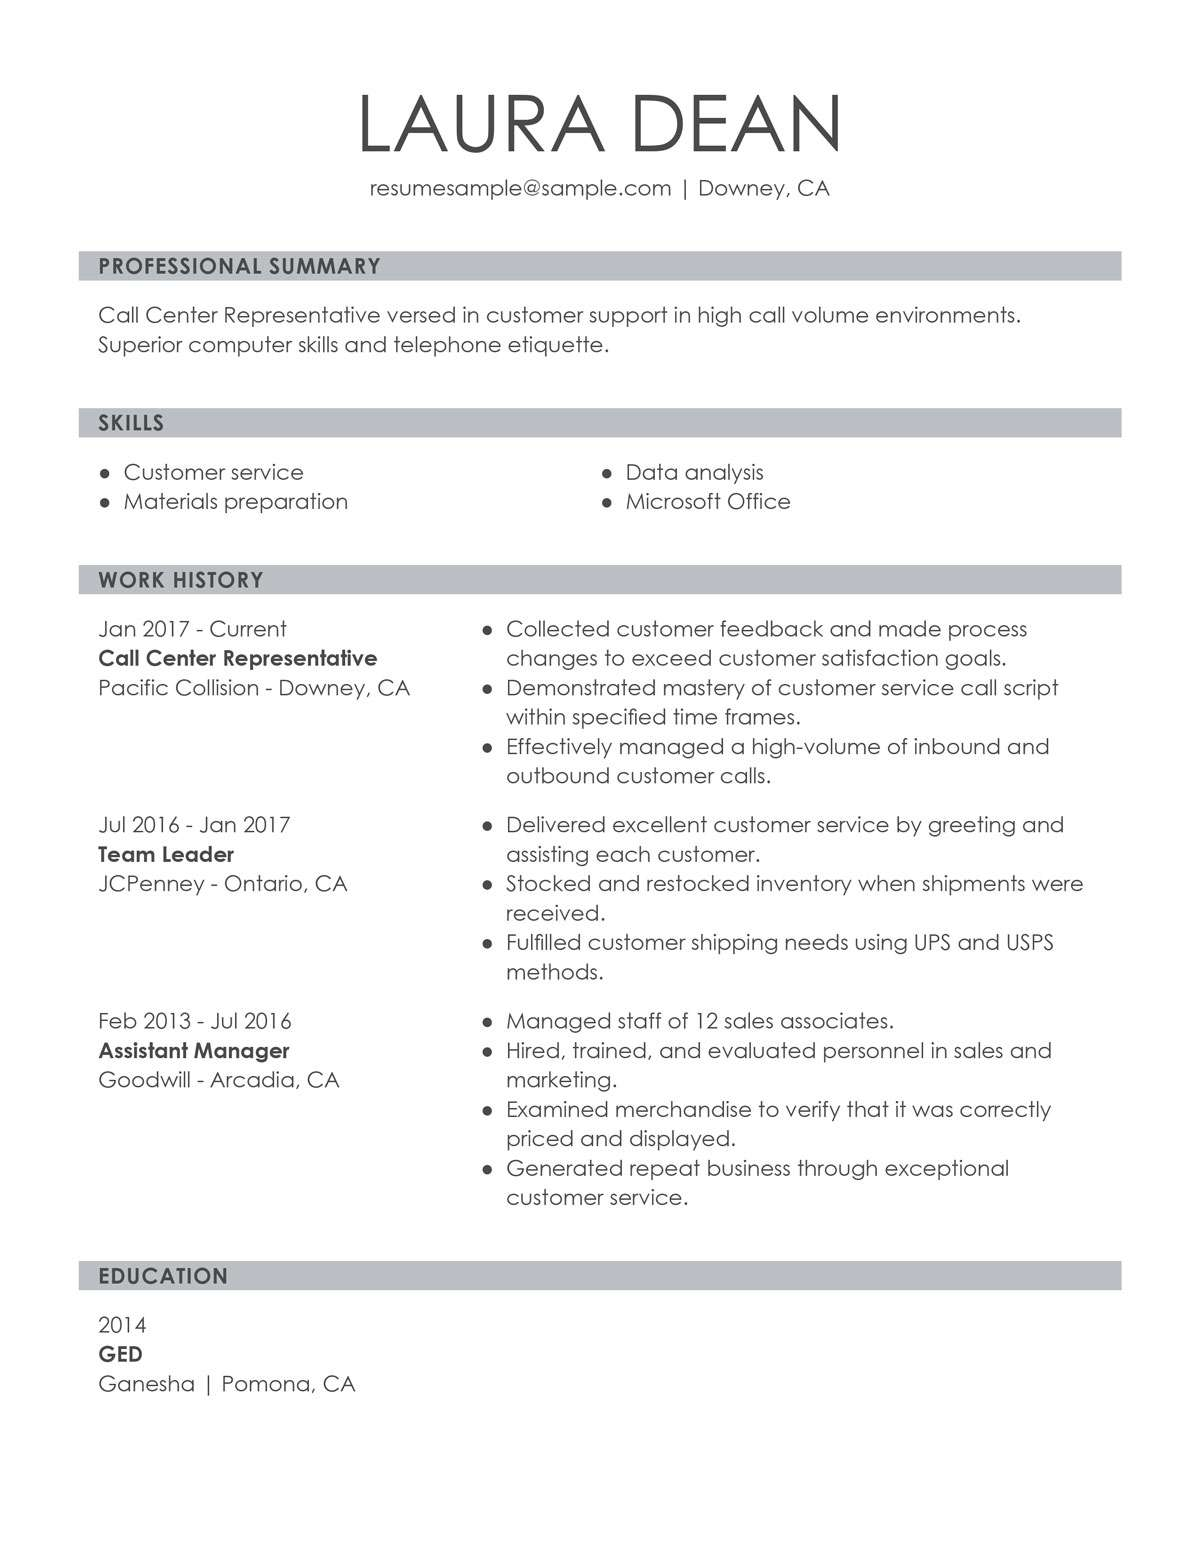 Resume Skill Examples For Customer Service